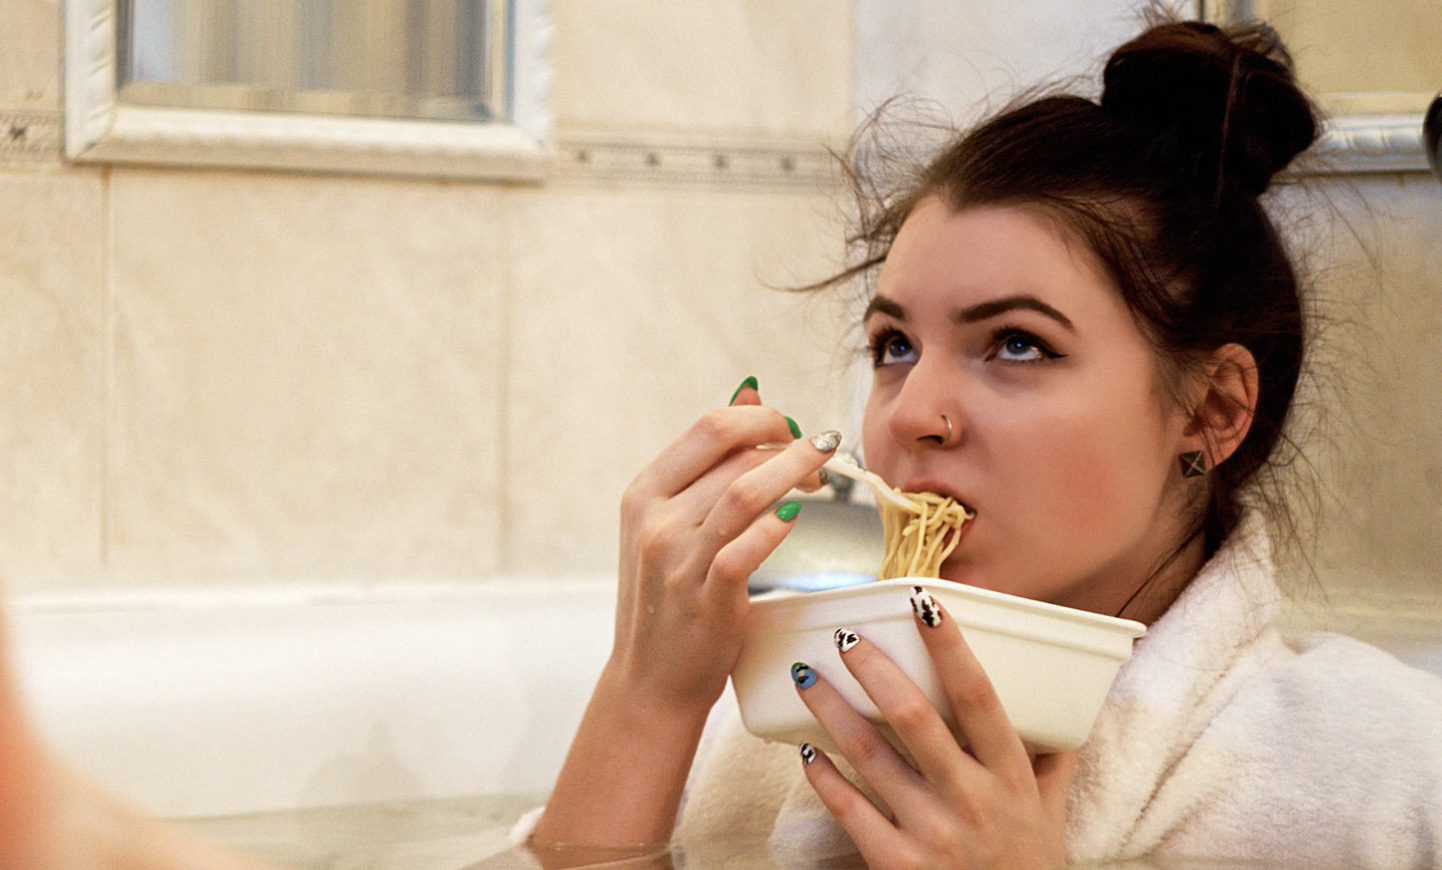 Girl sitting in tub eating a bowl of pasta looking sad.